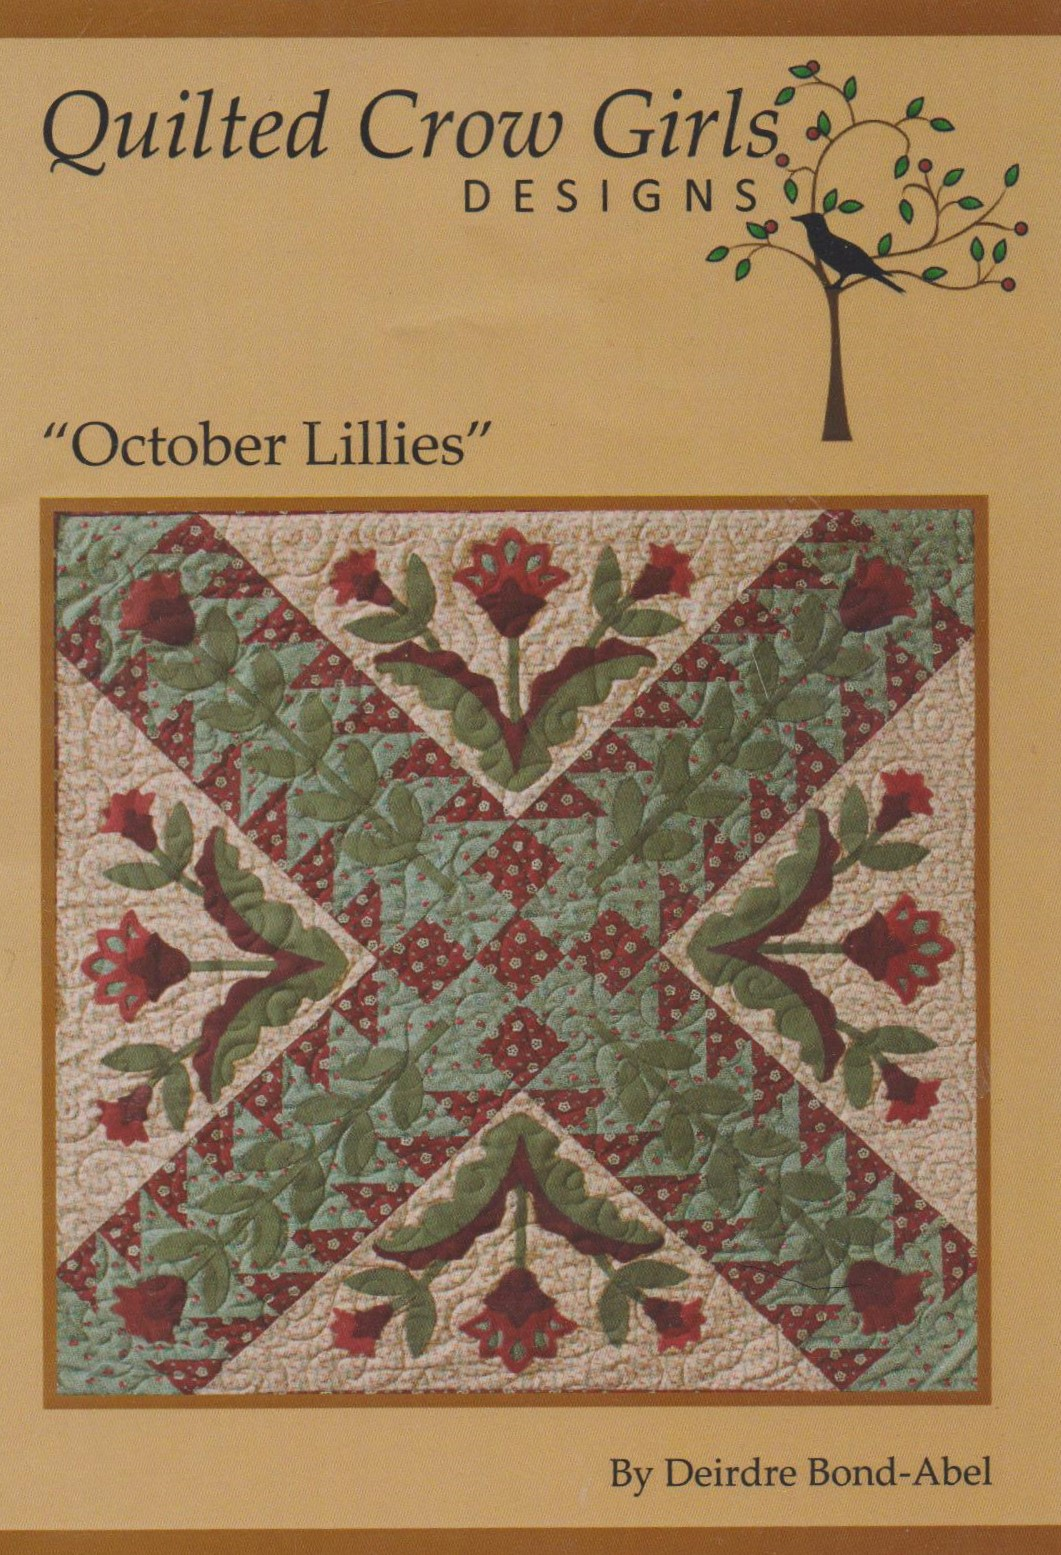 October Lillies Pattern and Fabrics from Quilted Crow Girls